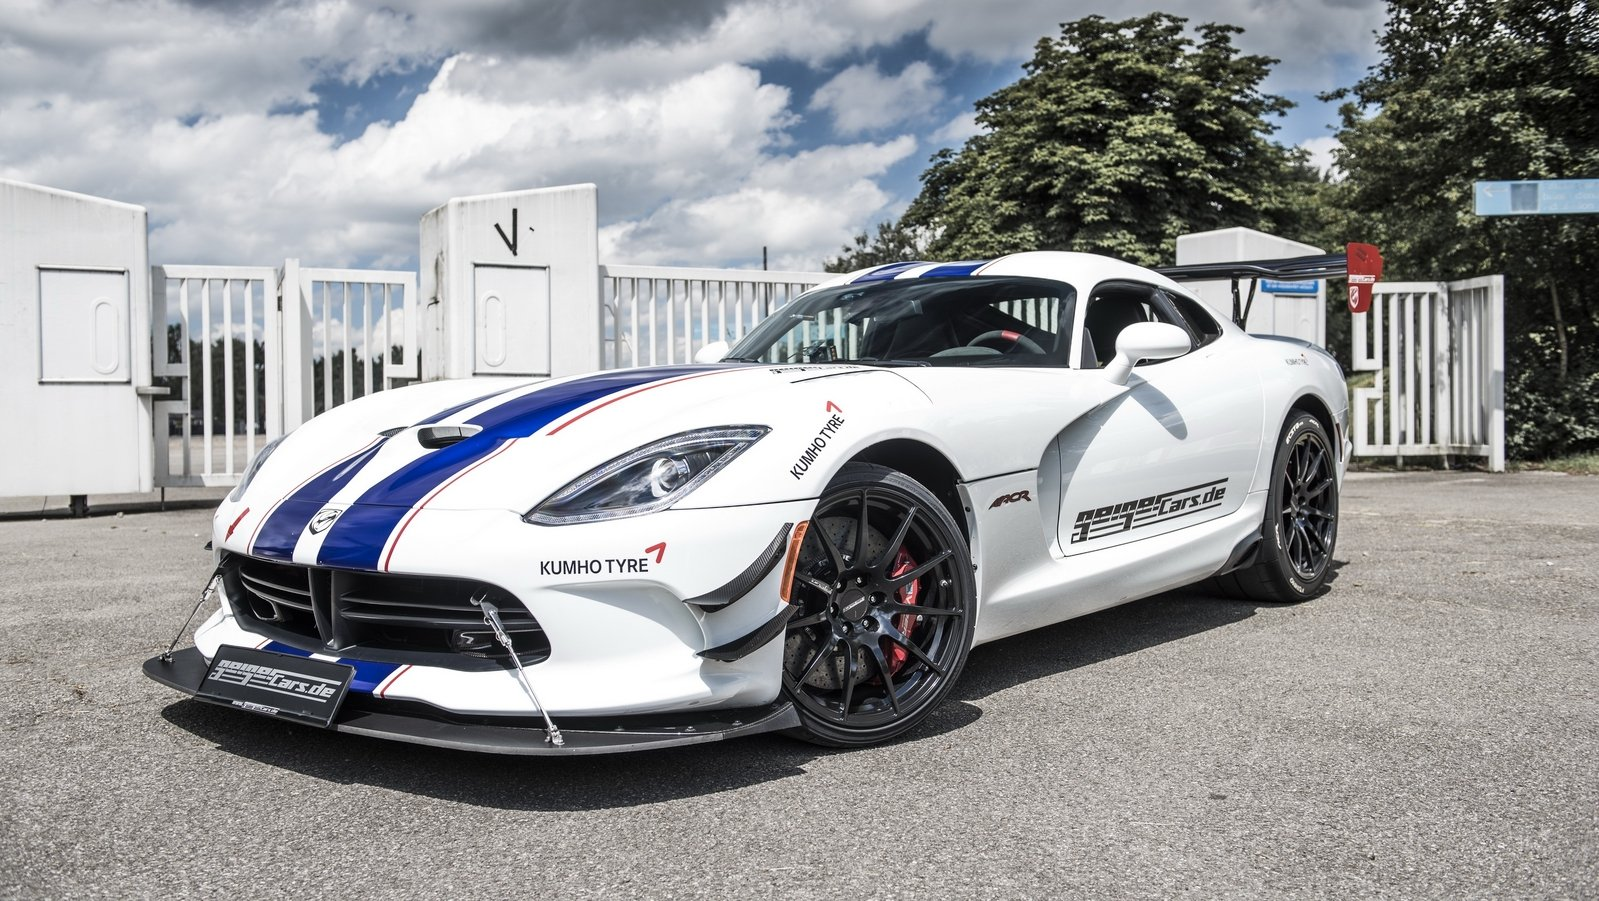 2016 dodge viper acr by geiger cars review top speed. Black Bedroom Furniture Sets. Home Design Ideas